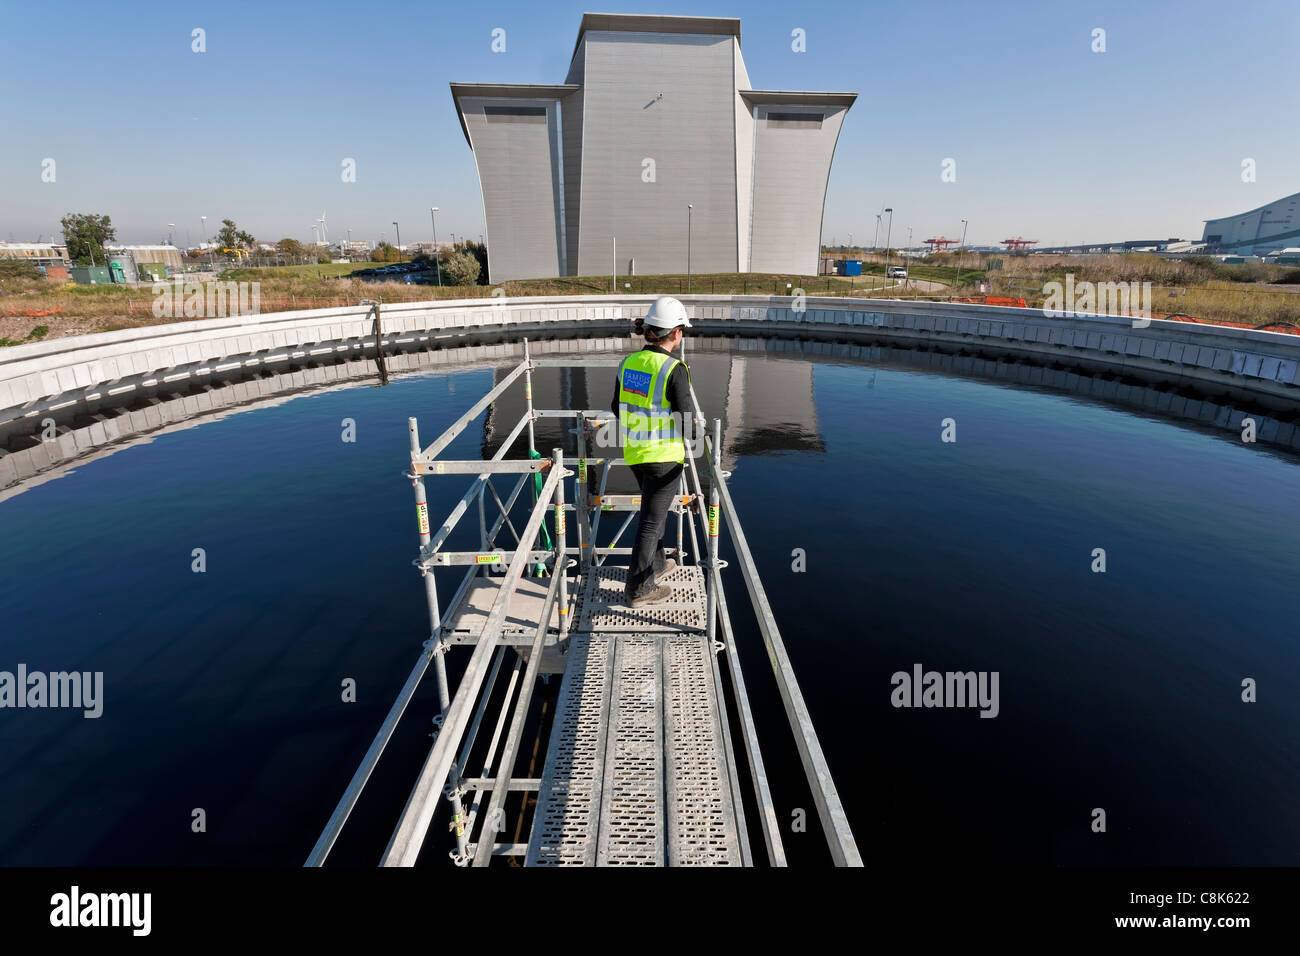 Tank construction at a sewage treatment works in South London. - Stock Image